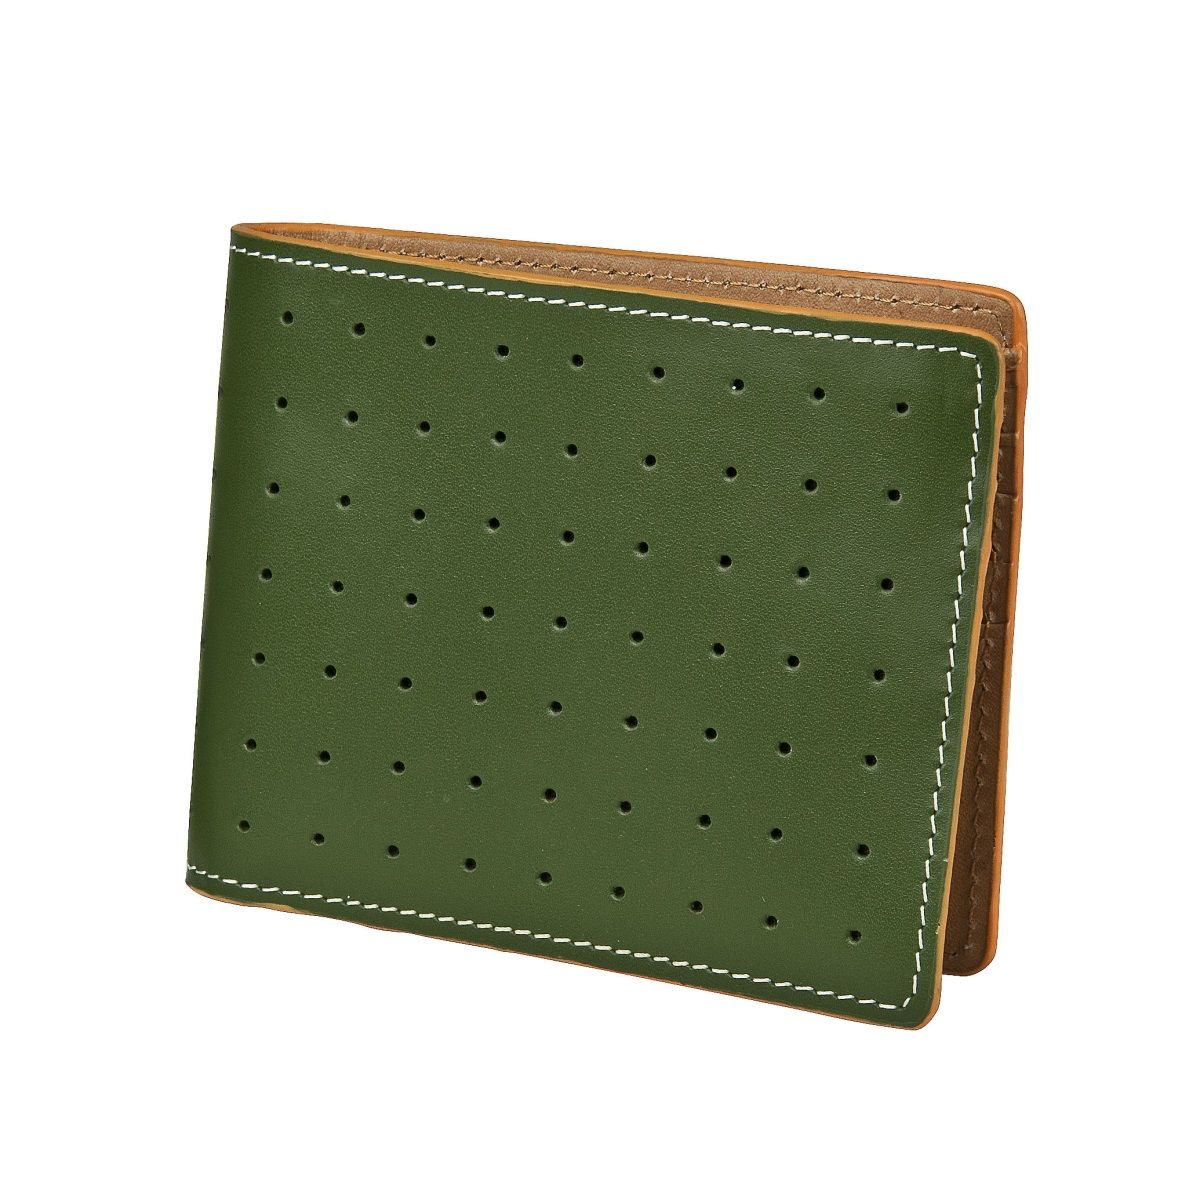 J.FOLD Loungemaster Leather Wallet  - Green